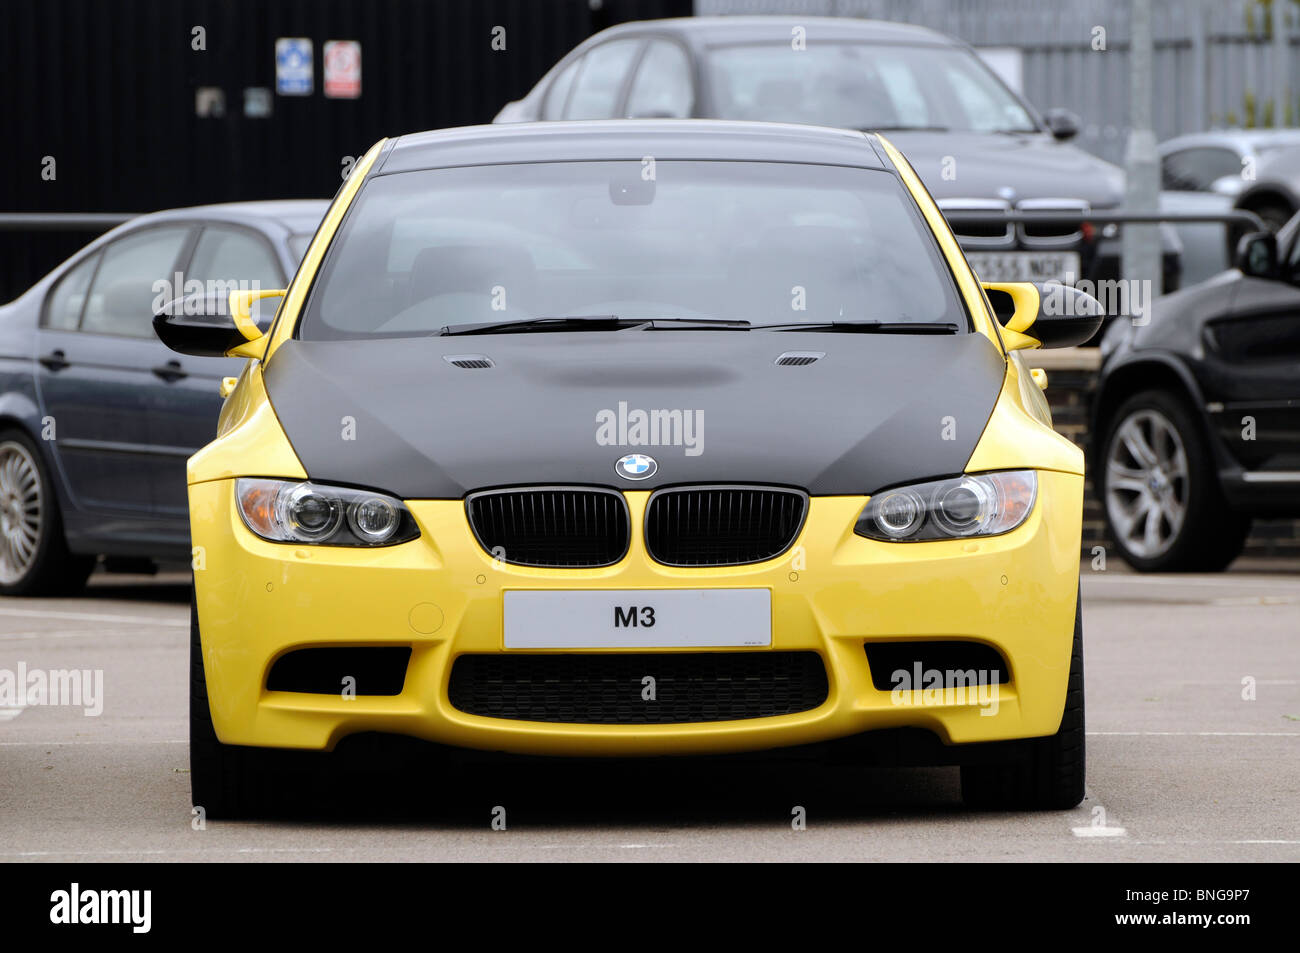 New BMW M3 Car On Dealeru0027s Forecourt   Stock Image